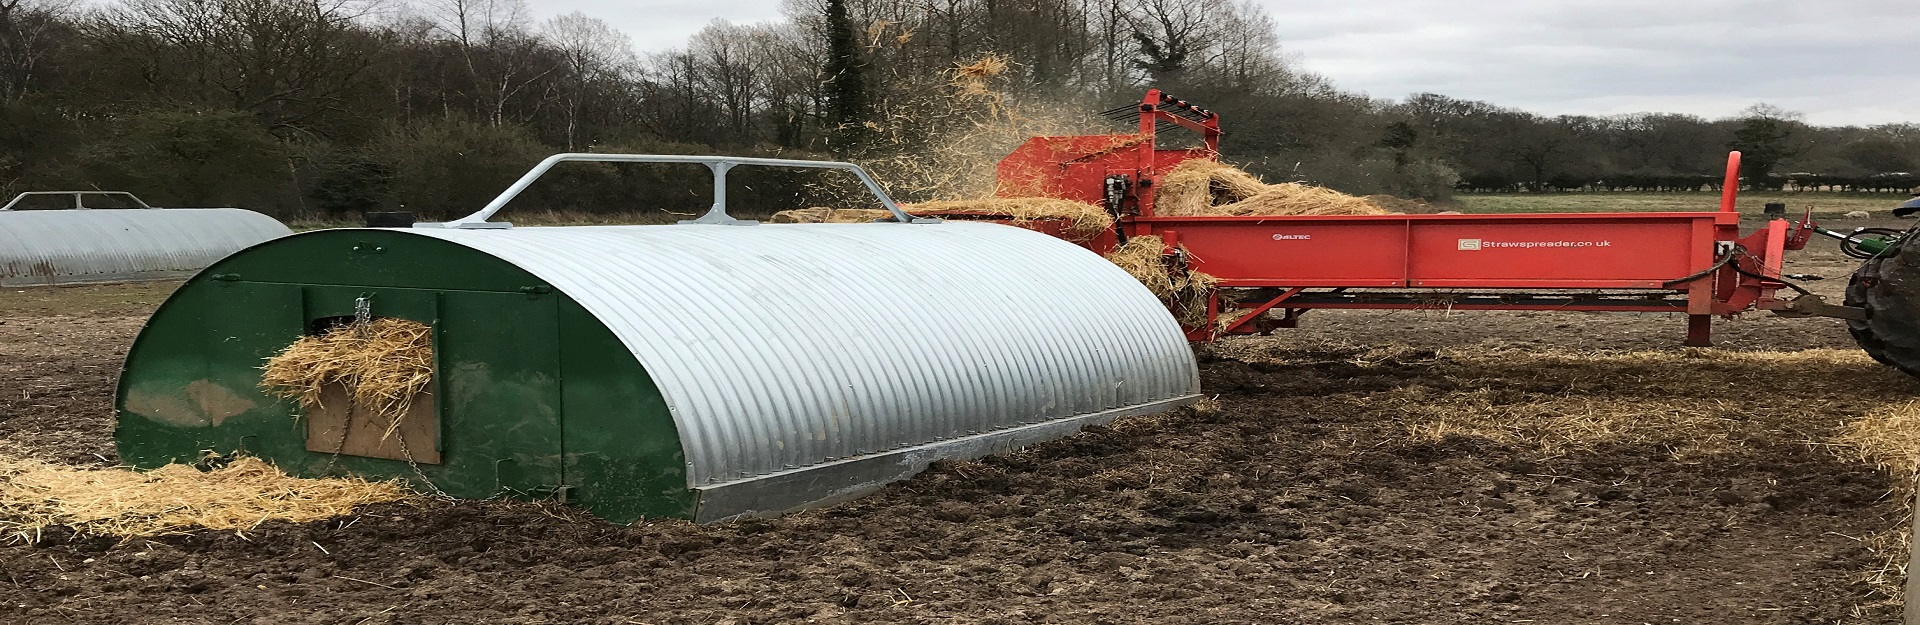 Pig Special - Book a demo today and see how much you could save